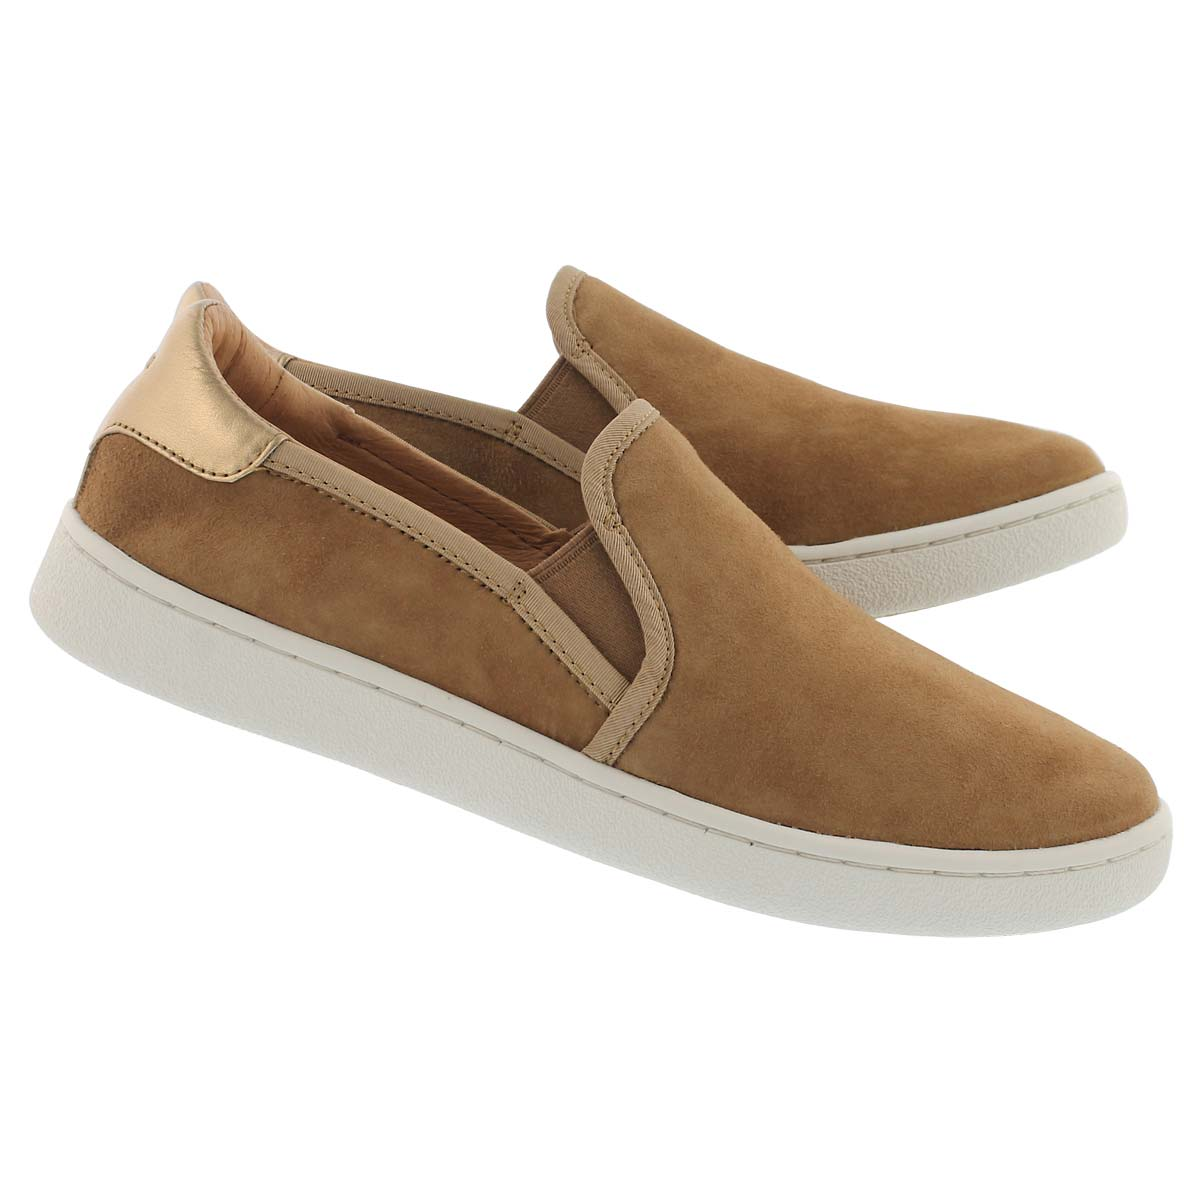 Lds Cas chestnut casual slip on shoe